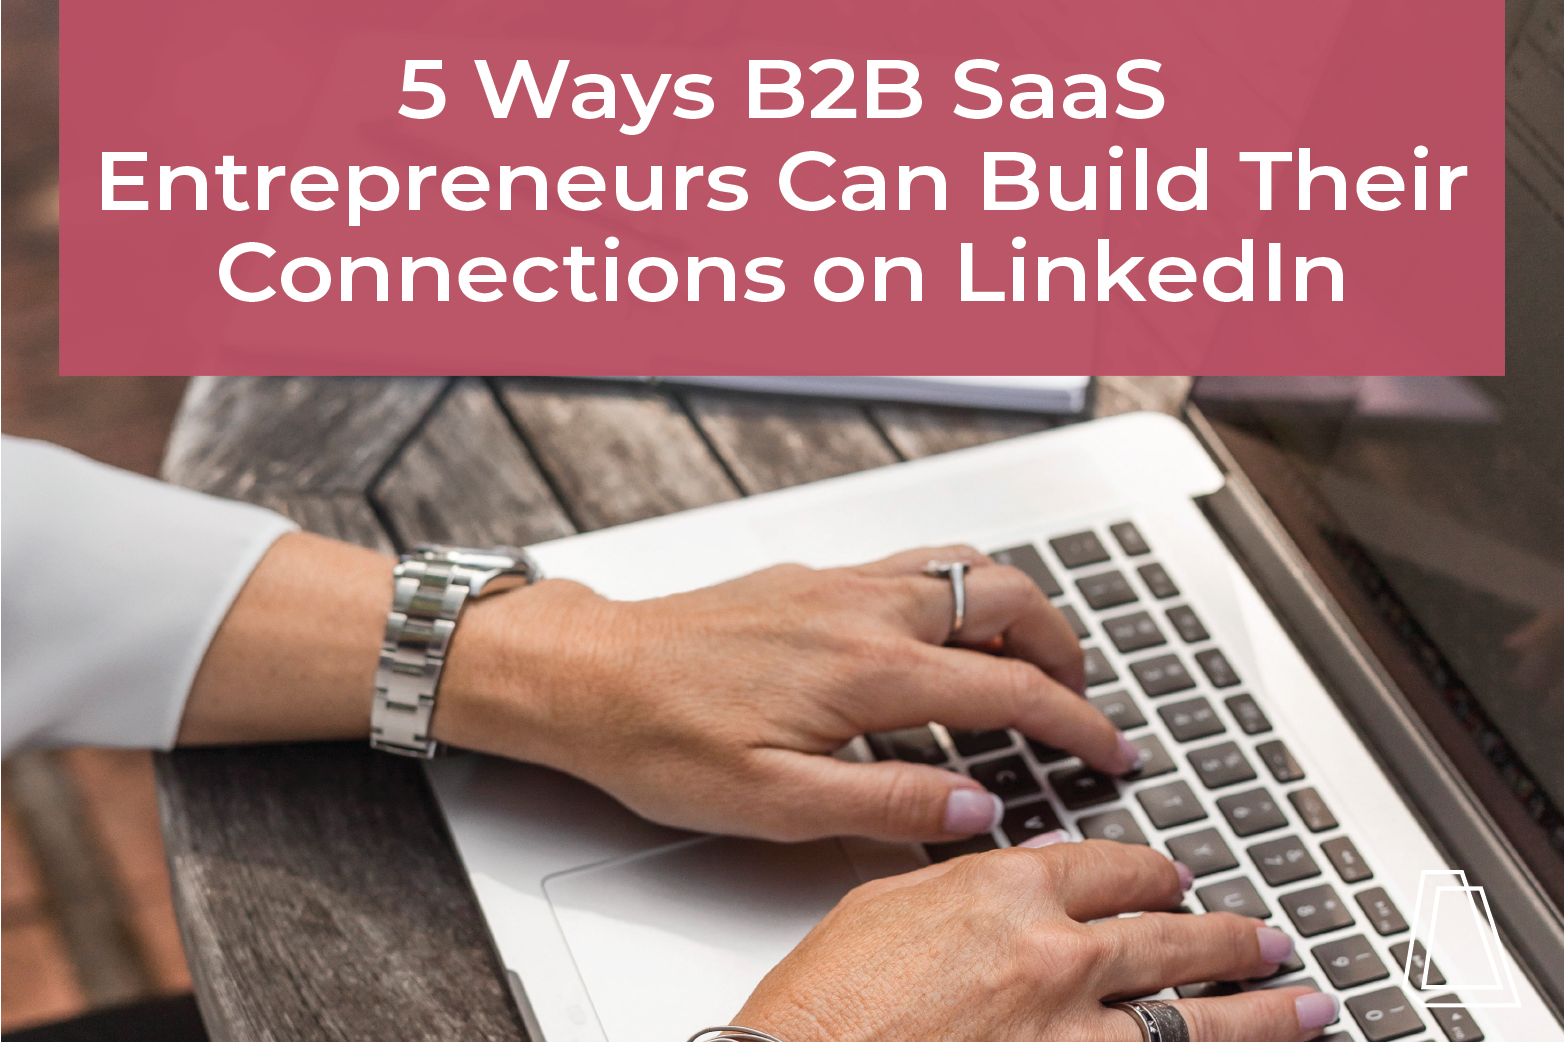 5 Ways B2B SaaS Entrepreneurs Can Build Their Connections on LinkedIn